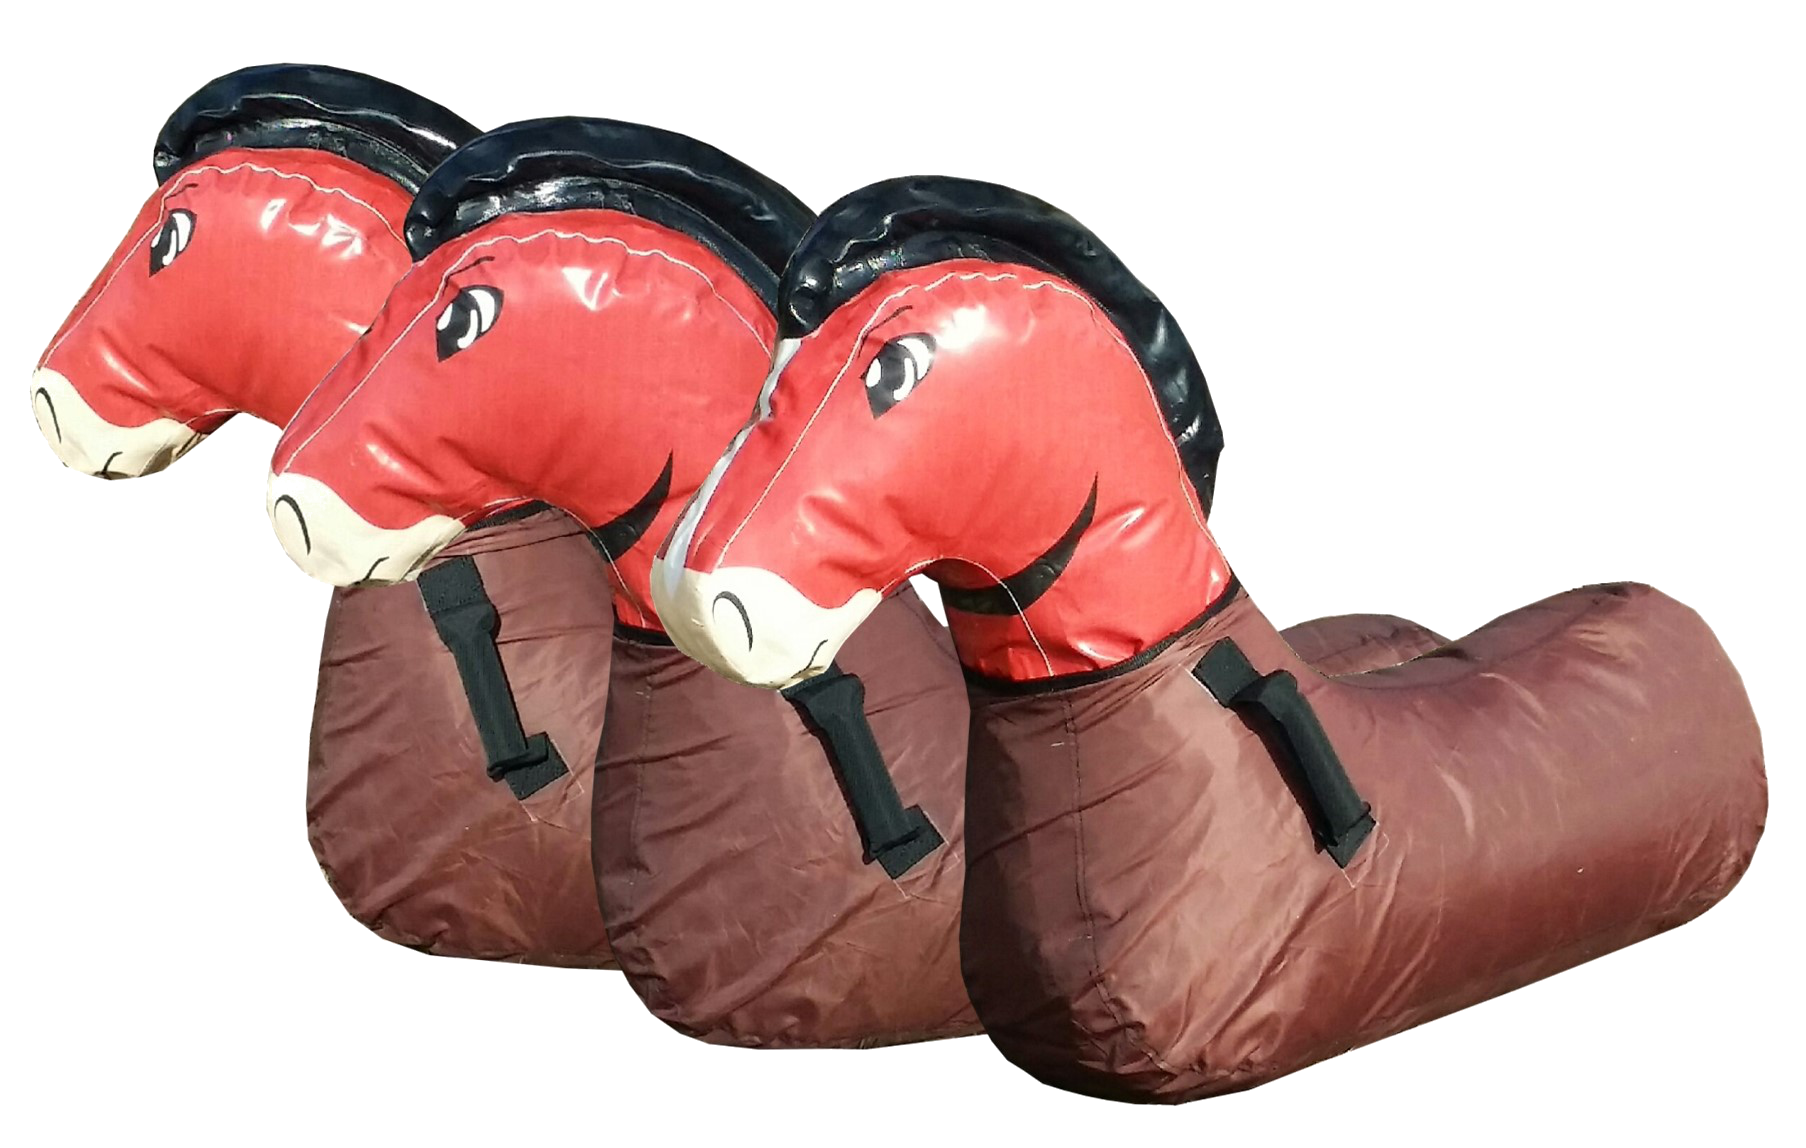 inflatable horses interactive game rentals Murfreesboro